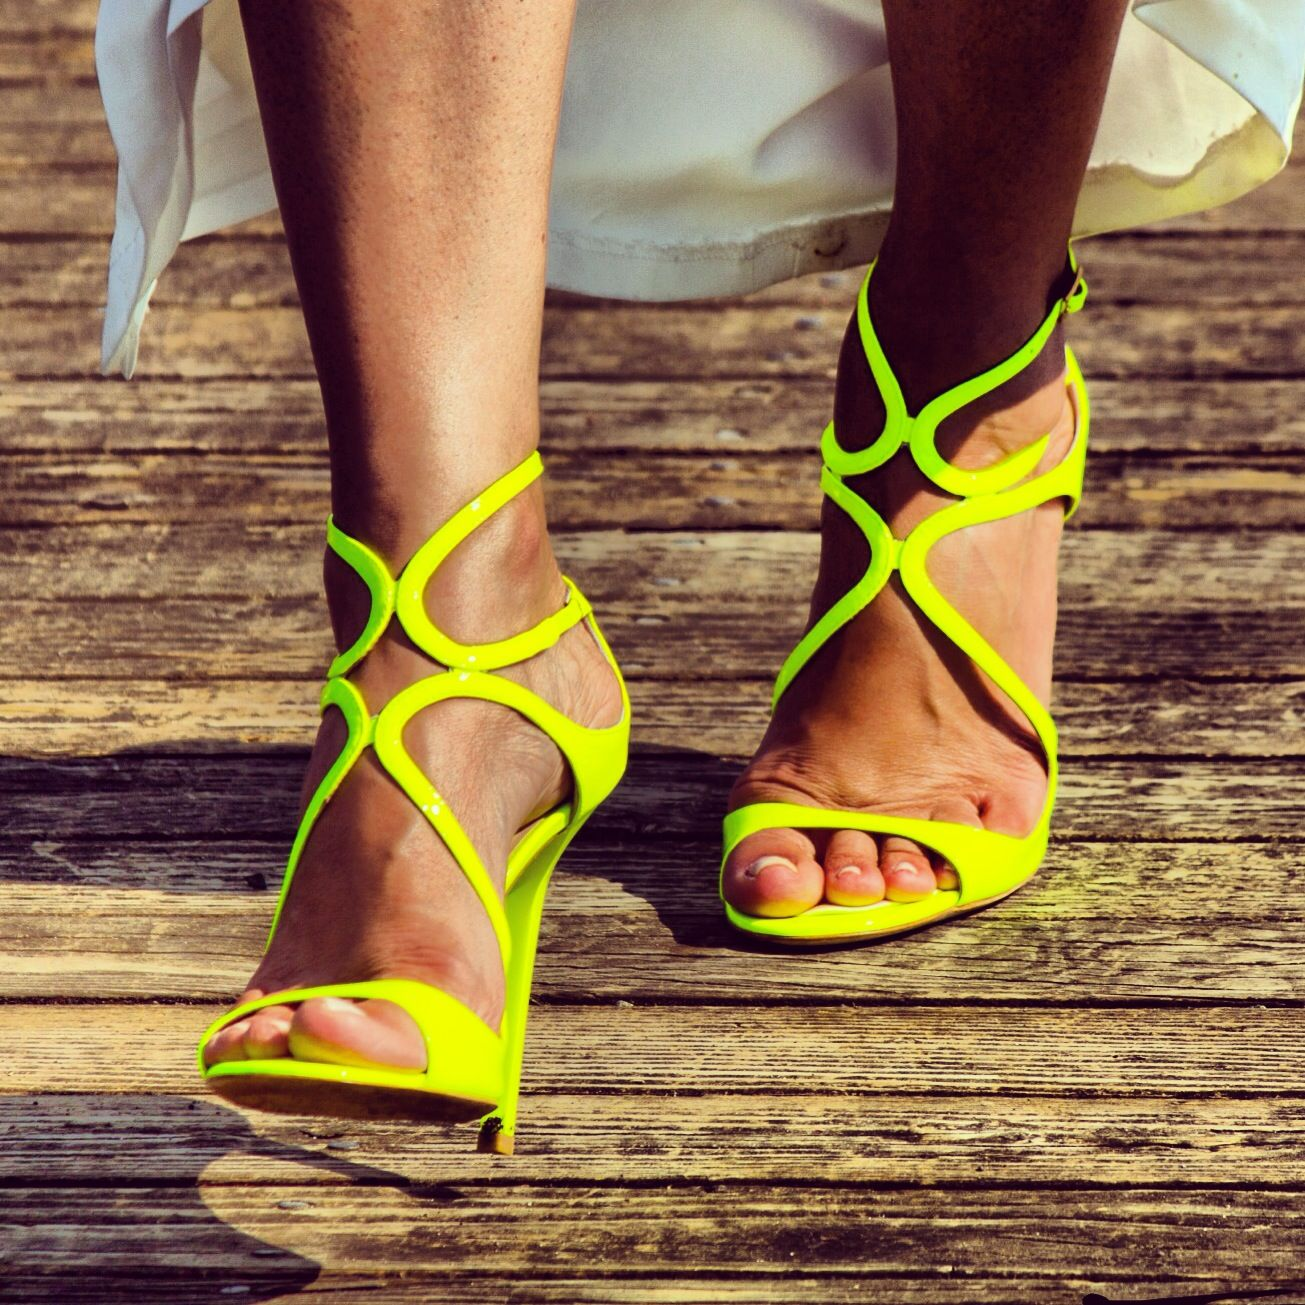 MY CHOOS for the wedding. A pop of COLOR made things untraditional.